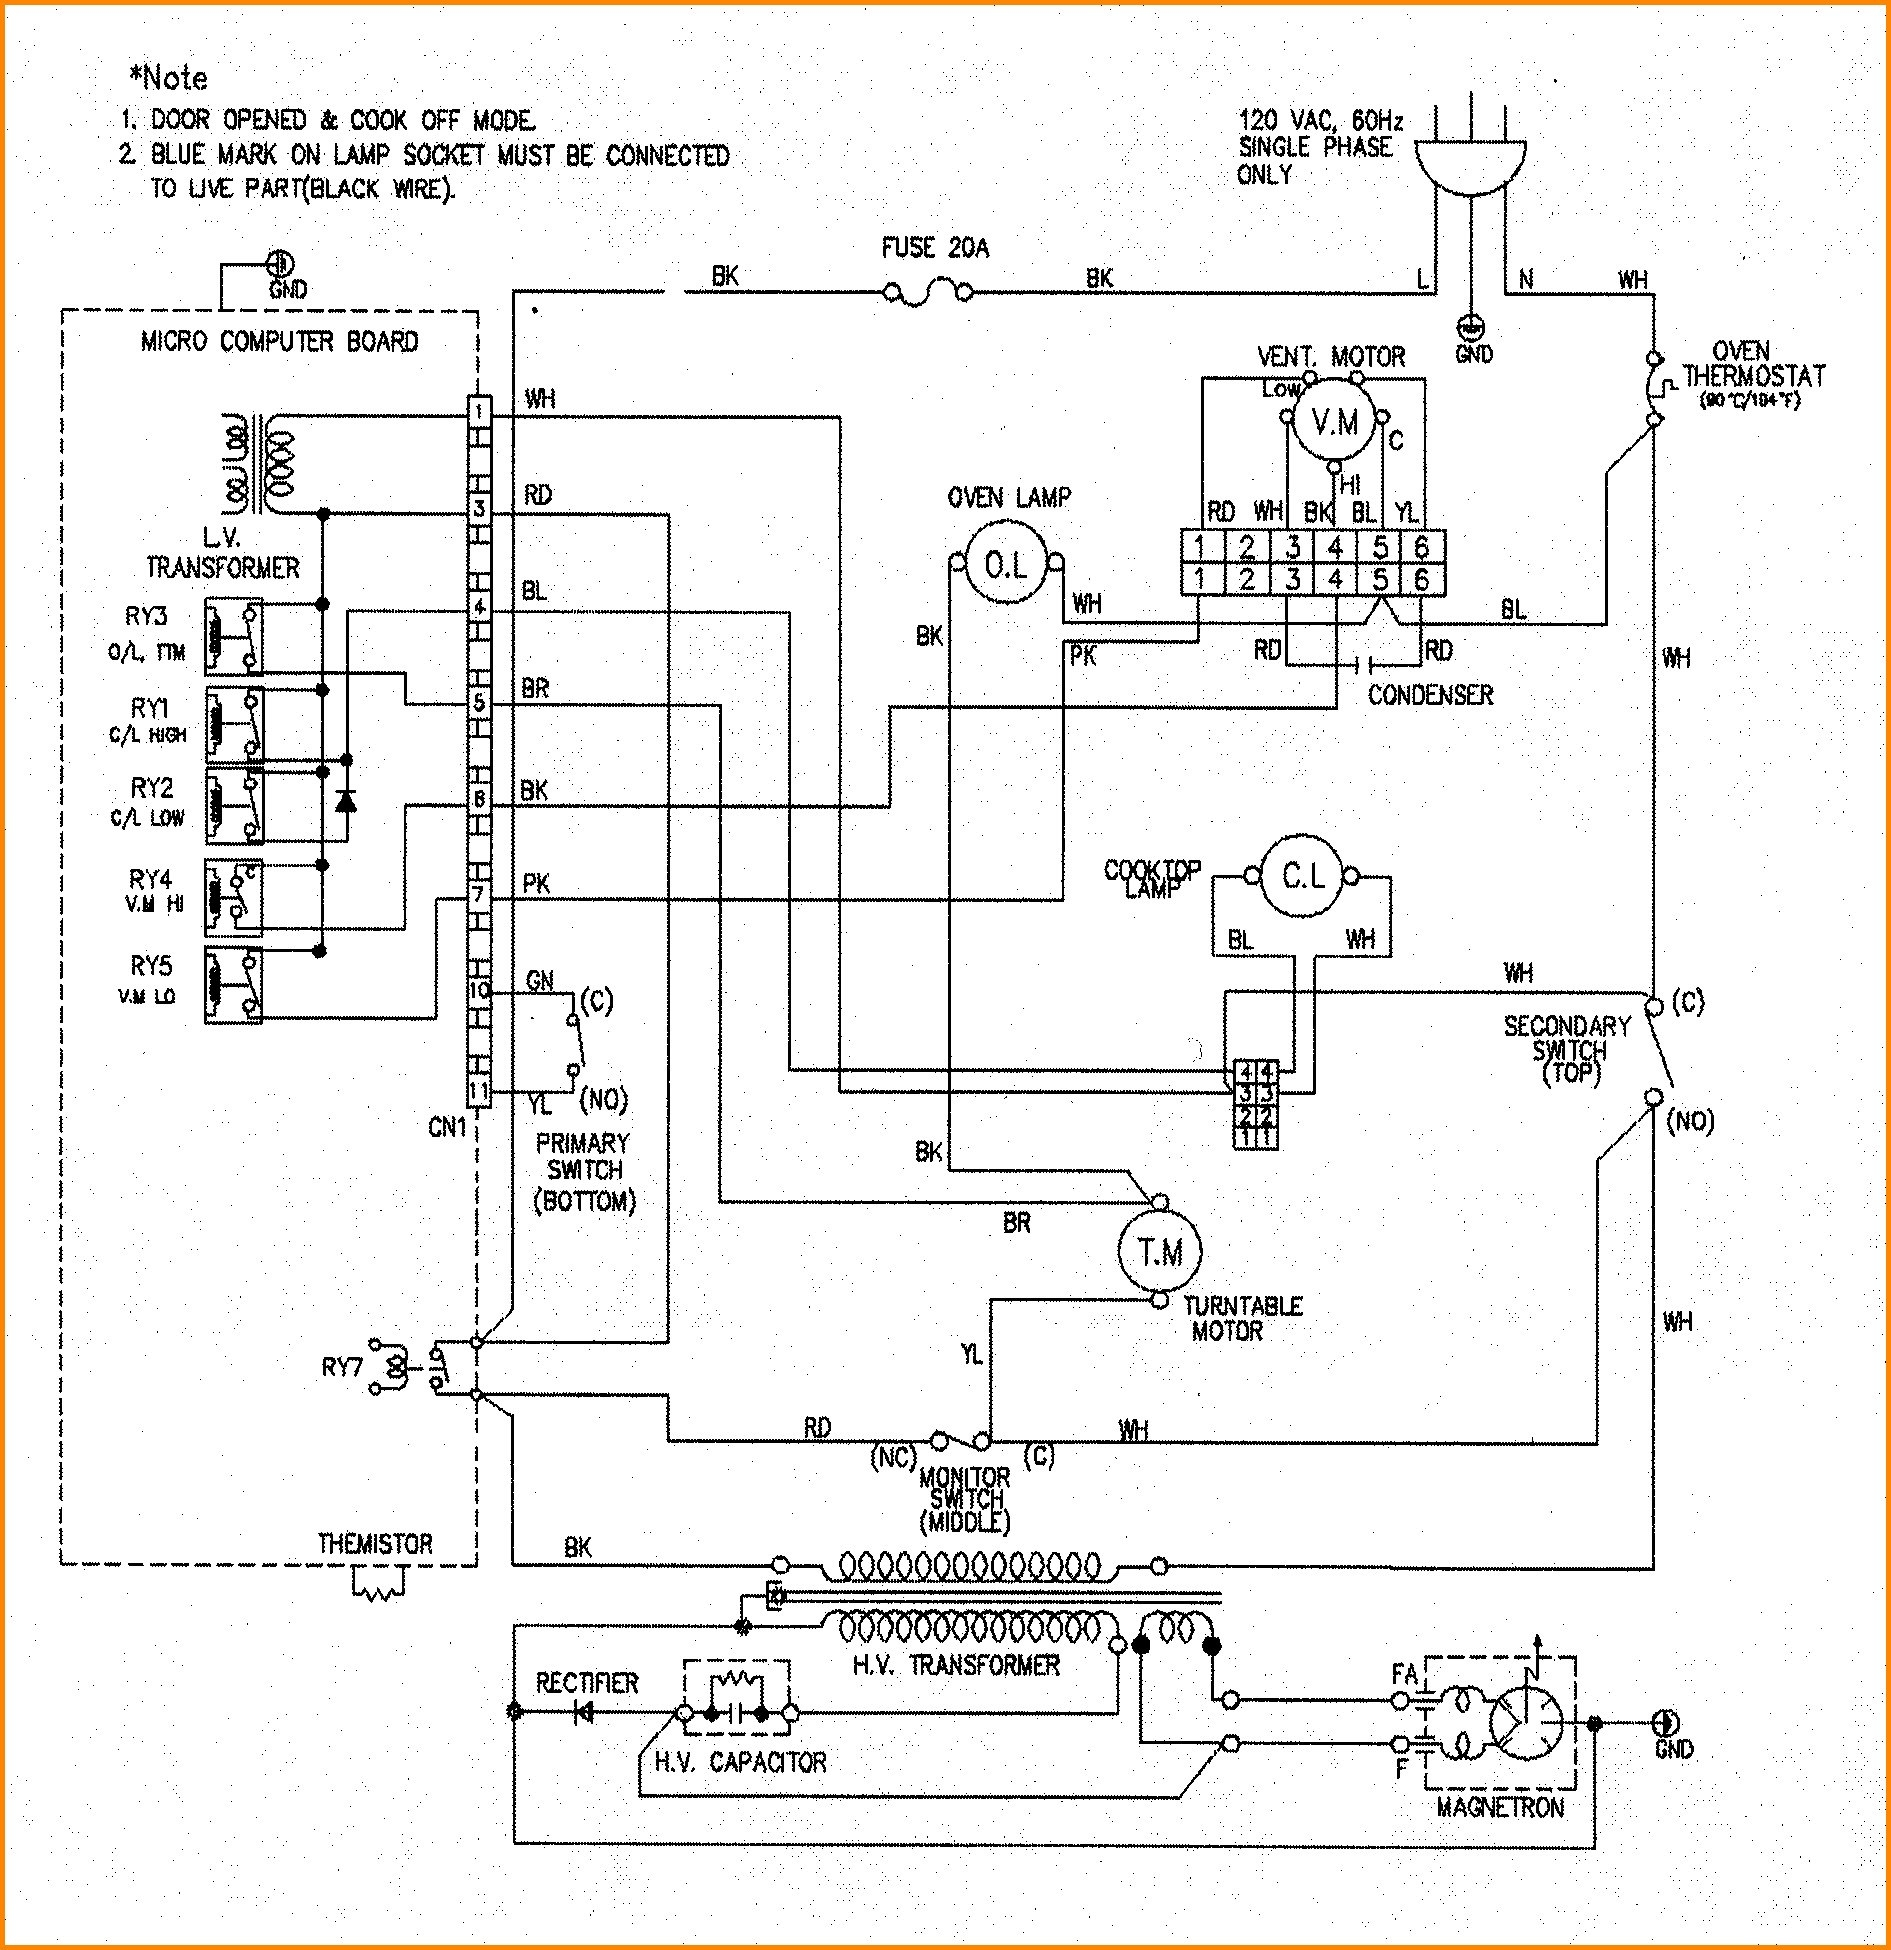 diy powder coating oven wiring diagram | free wiring diagram frigidaire electric oven wiring diagram powder coat oven wiring diagram